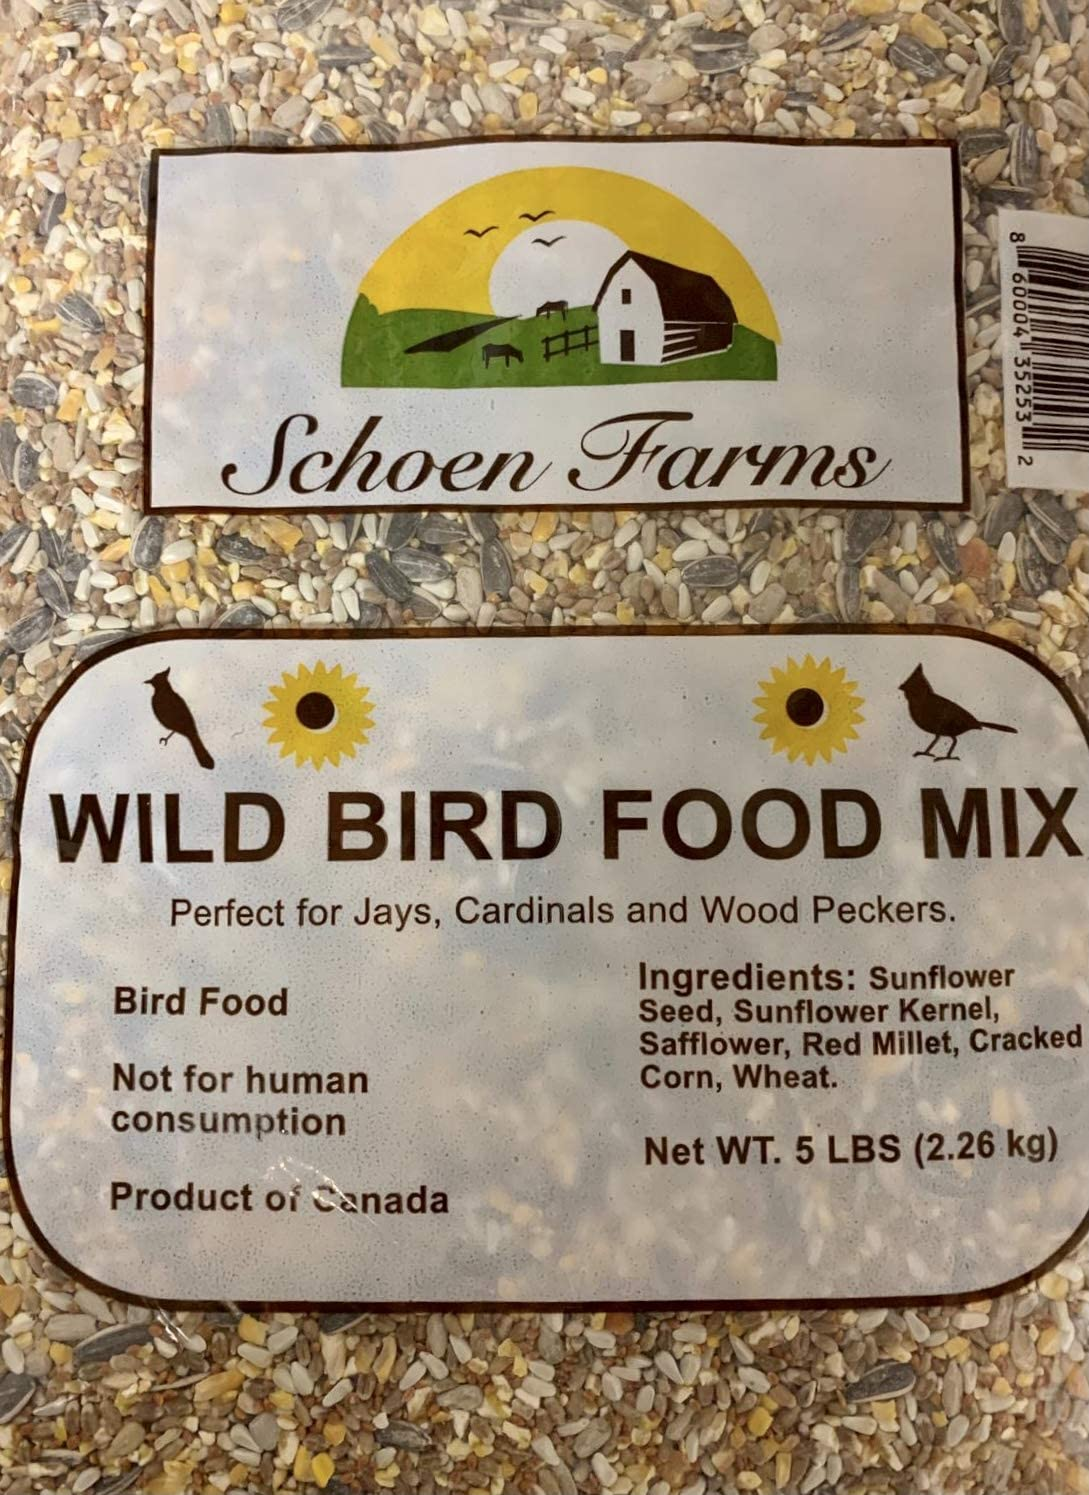 Schoen Farms Wild Bird Food Mix